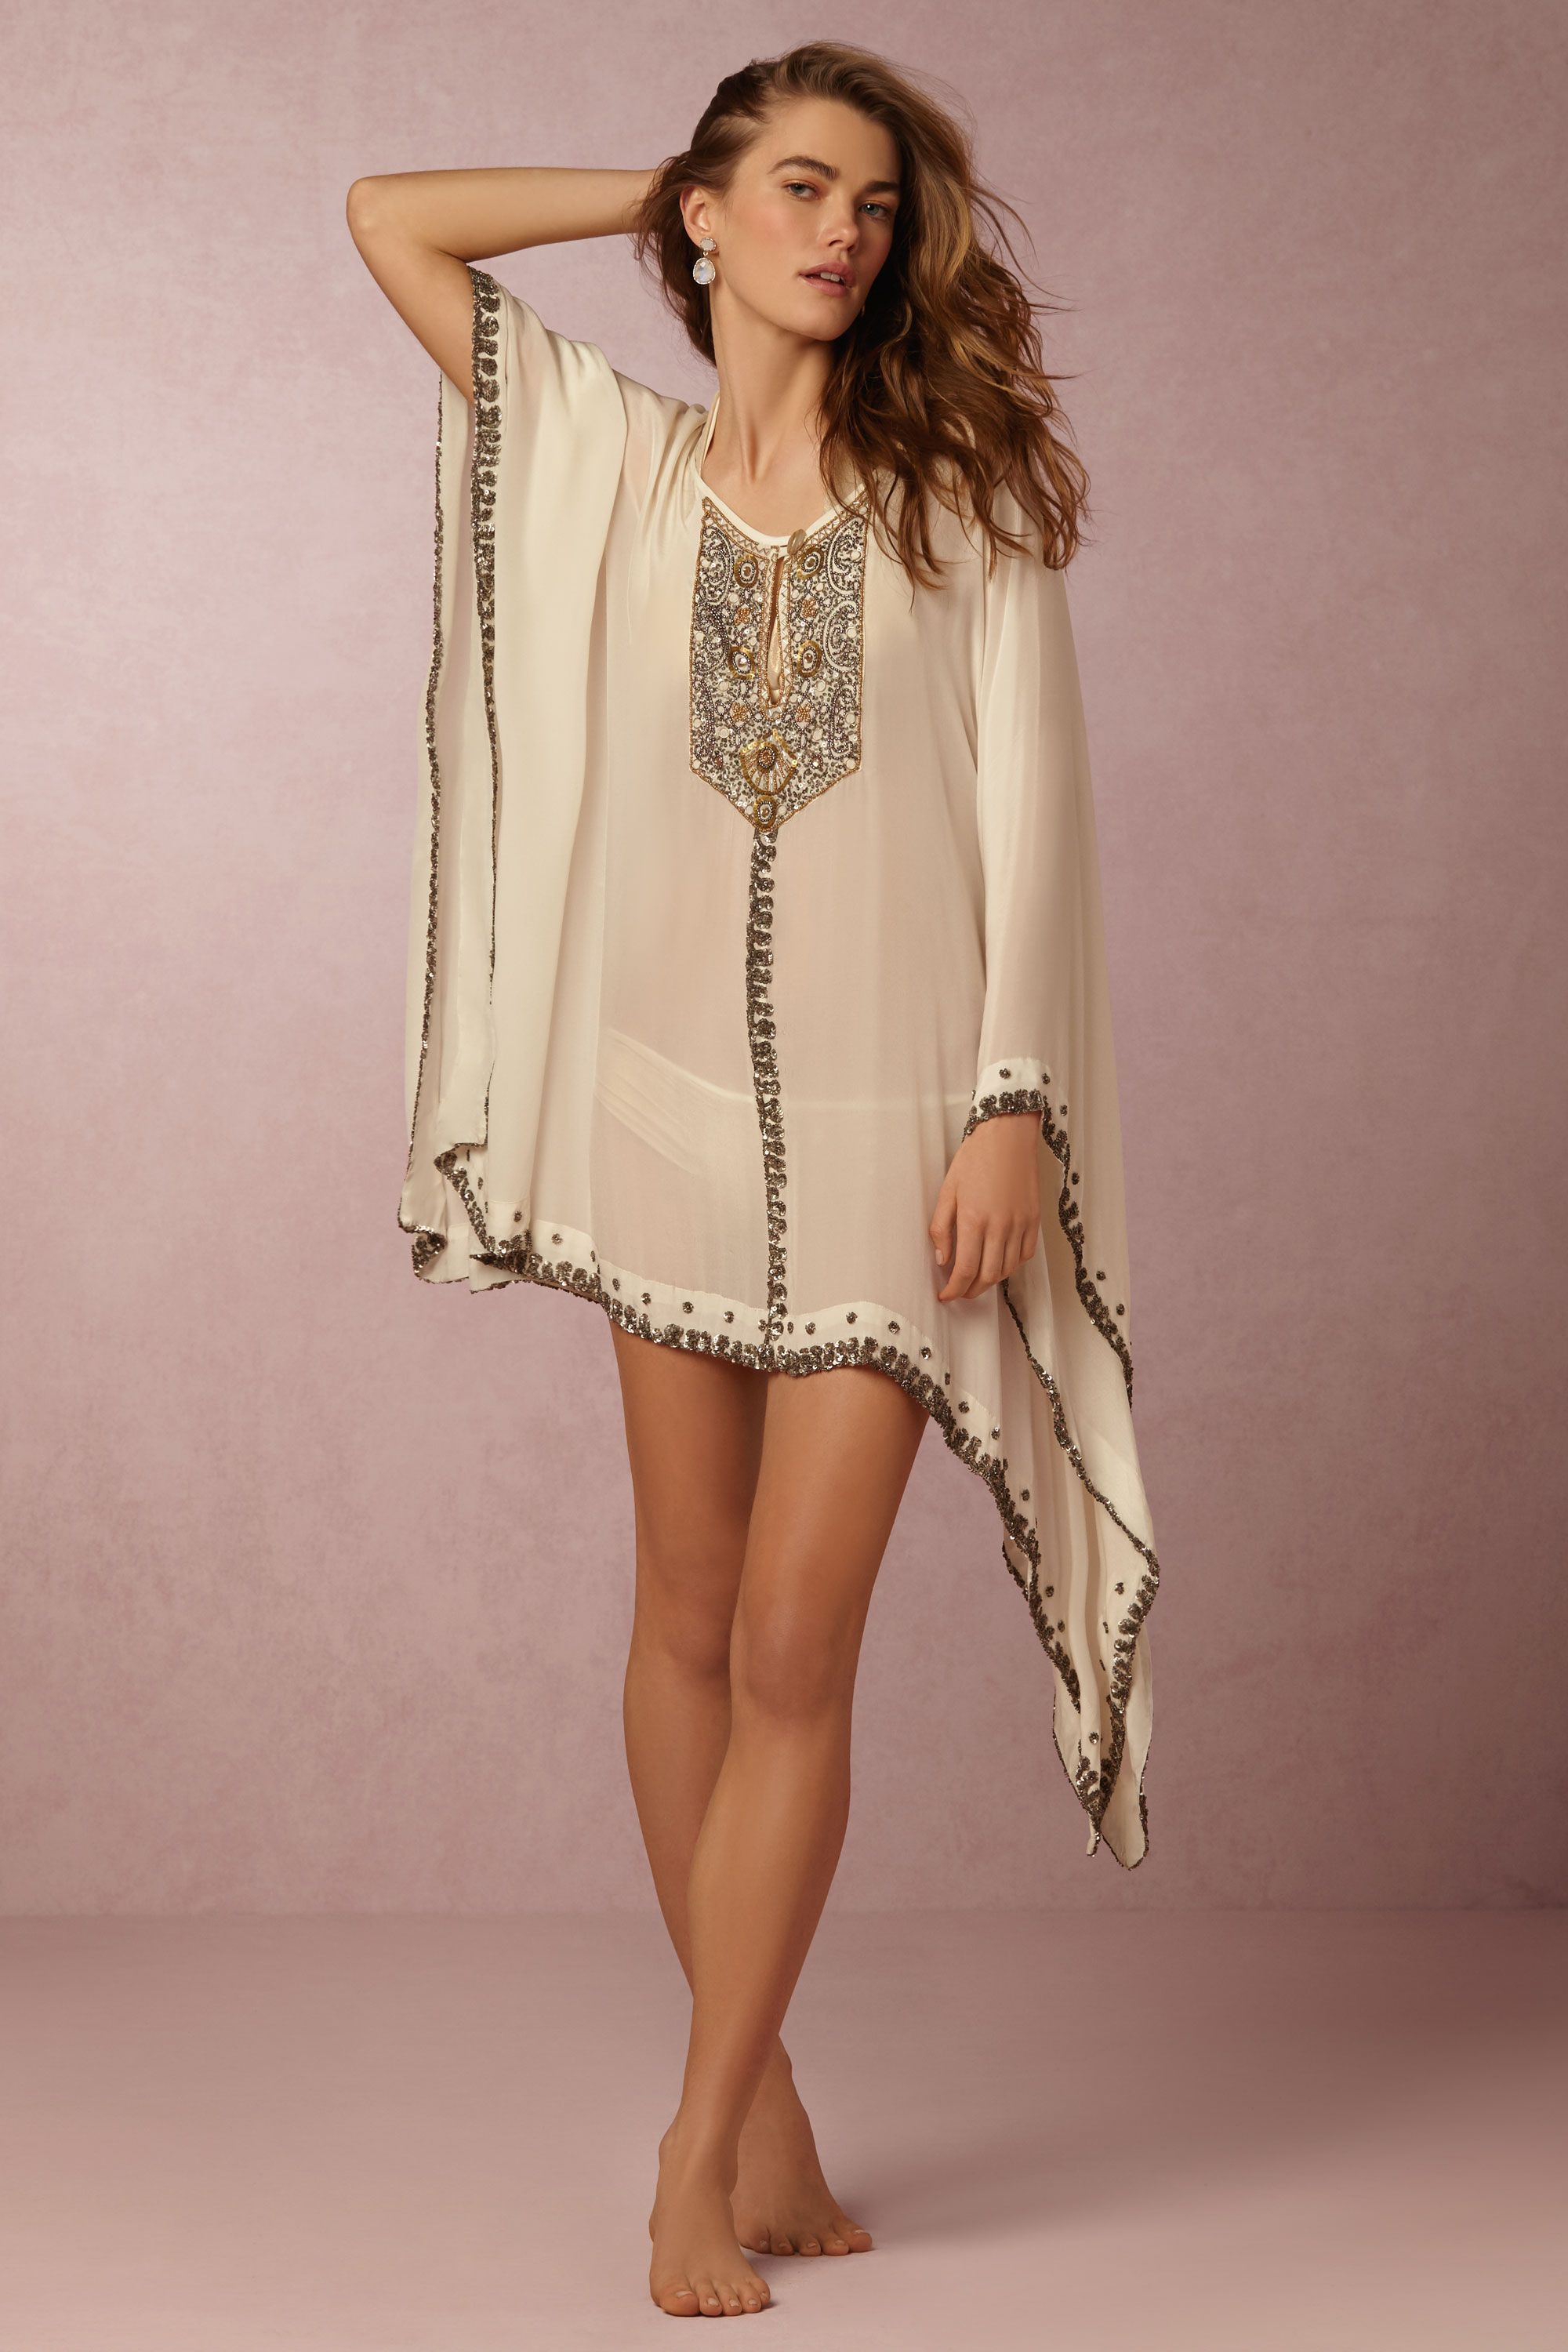 161b0a23bc9ea embellished beach cover-up with statement metallic-beading on silk. This  draped